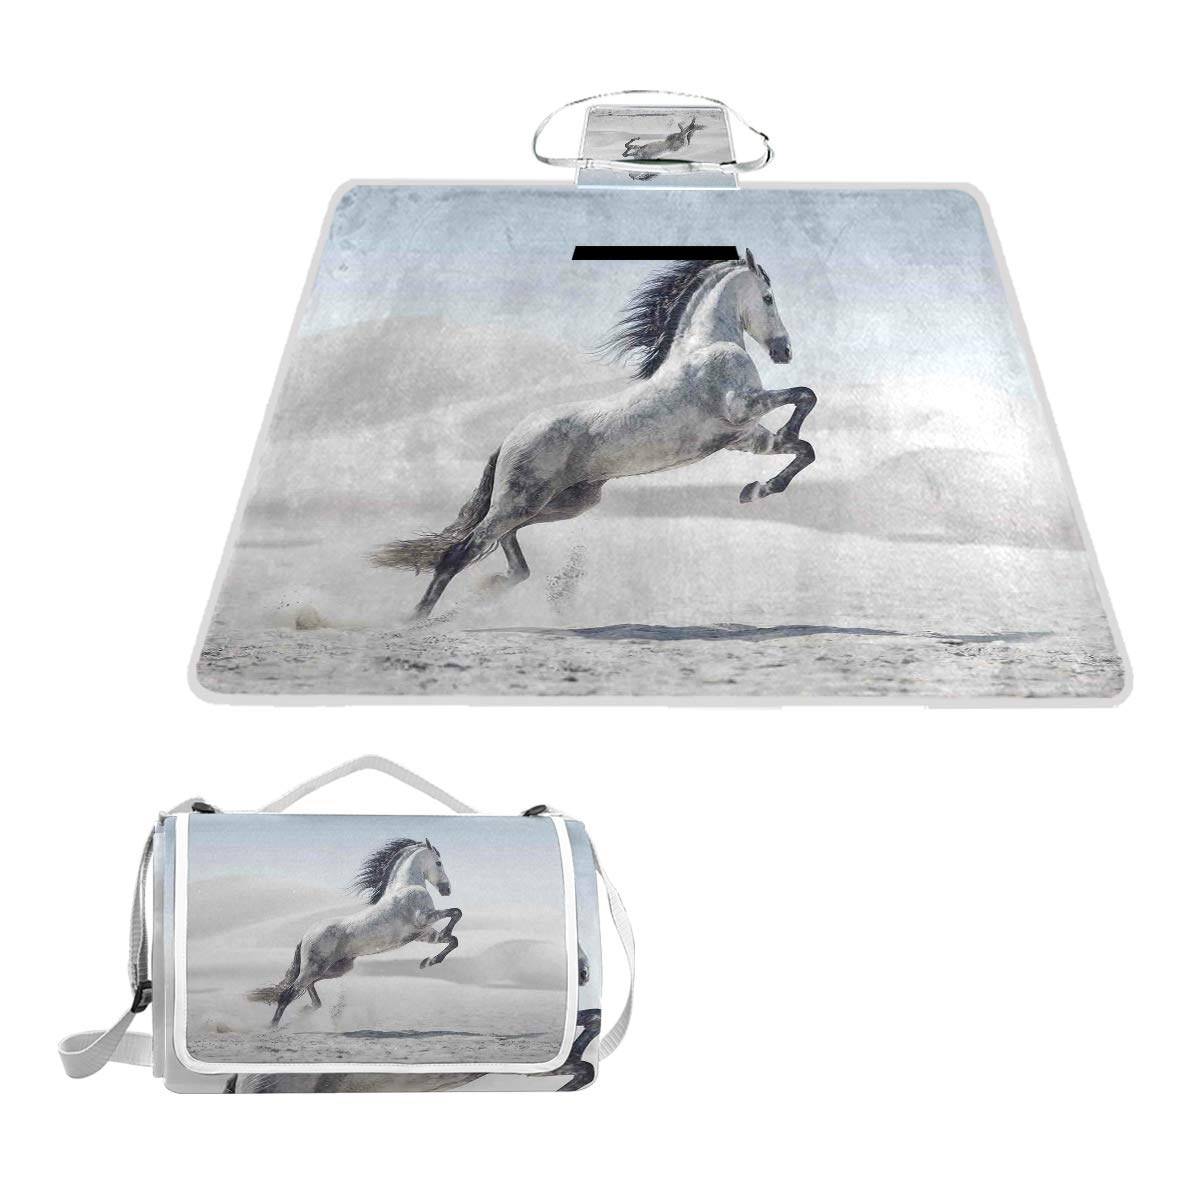 KVMV Silver Pony Horse Galloping Over Motion Majestic Wild Animal Power and Grace Theme Picnic Mat Sandproof and Waterproof Outdoor Picnic Blanket for Camping Hiking Beach Grass Travel by KVMV